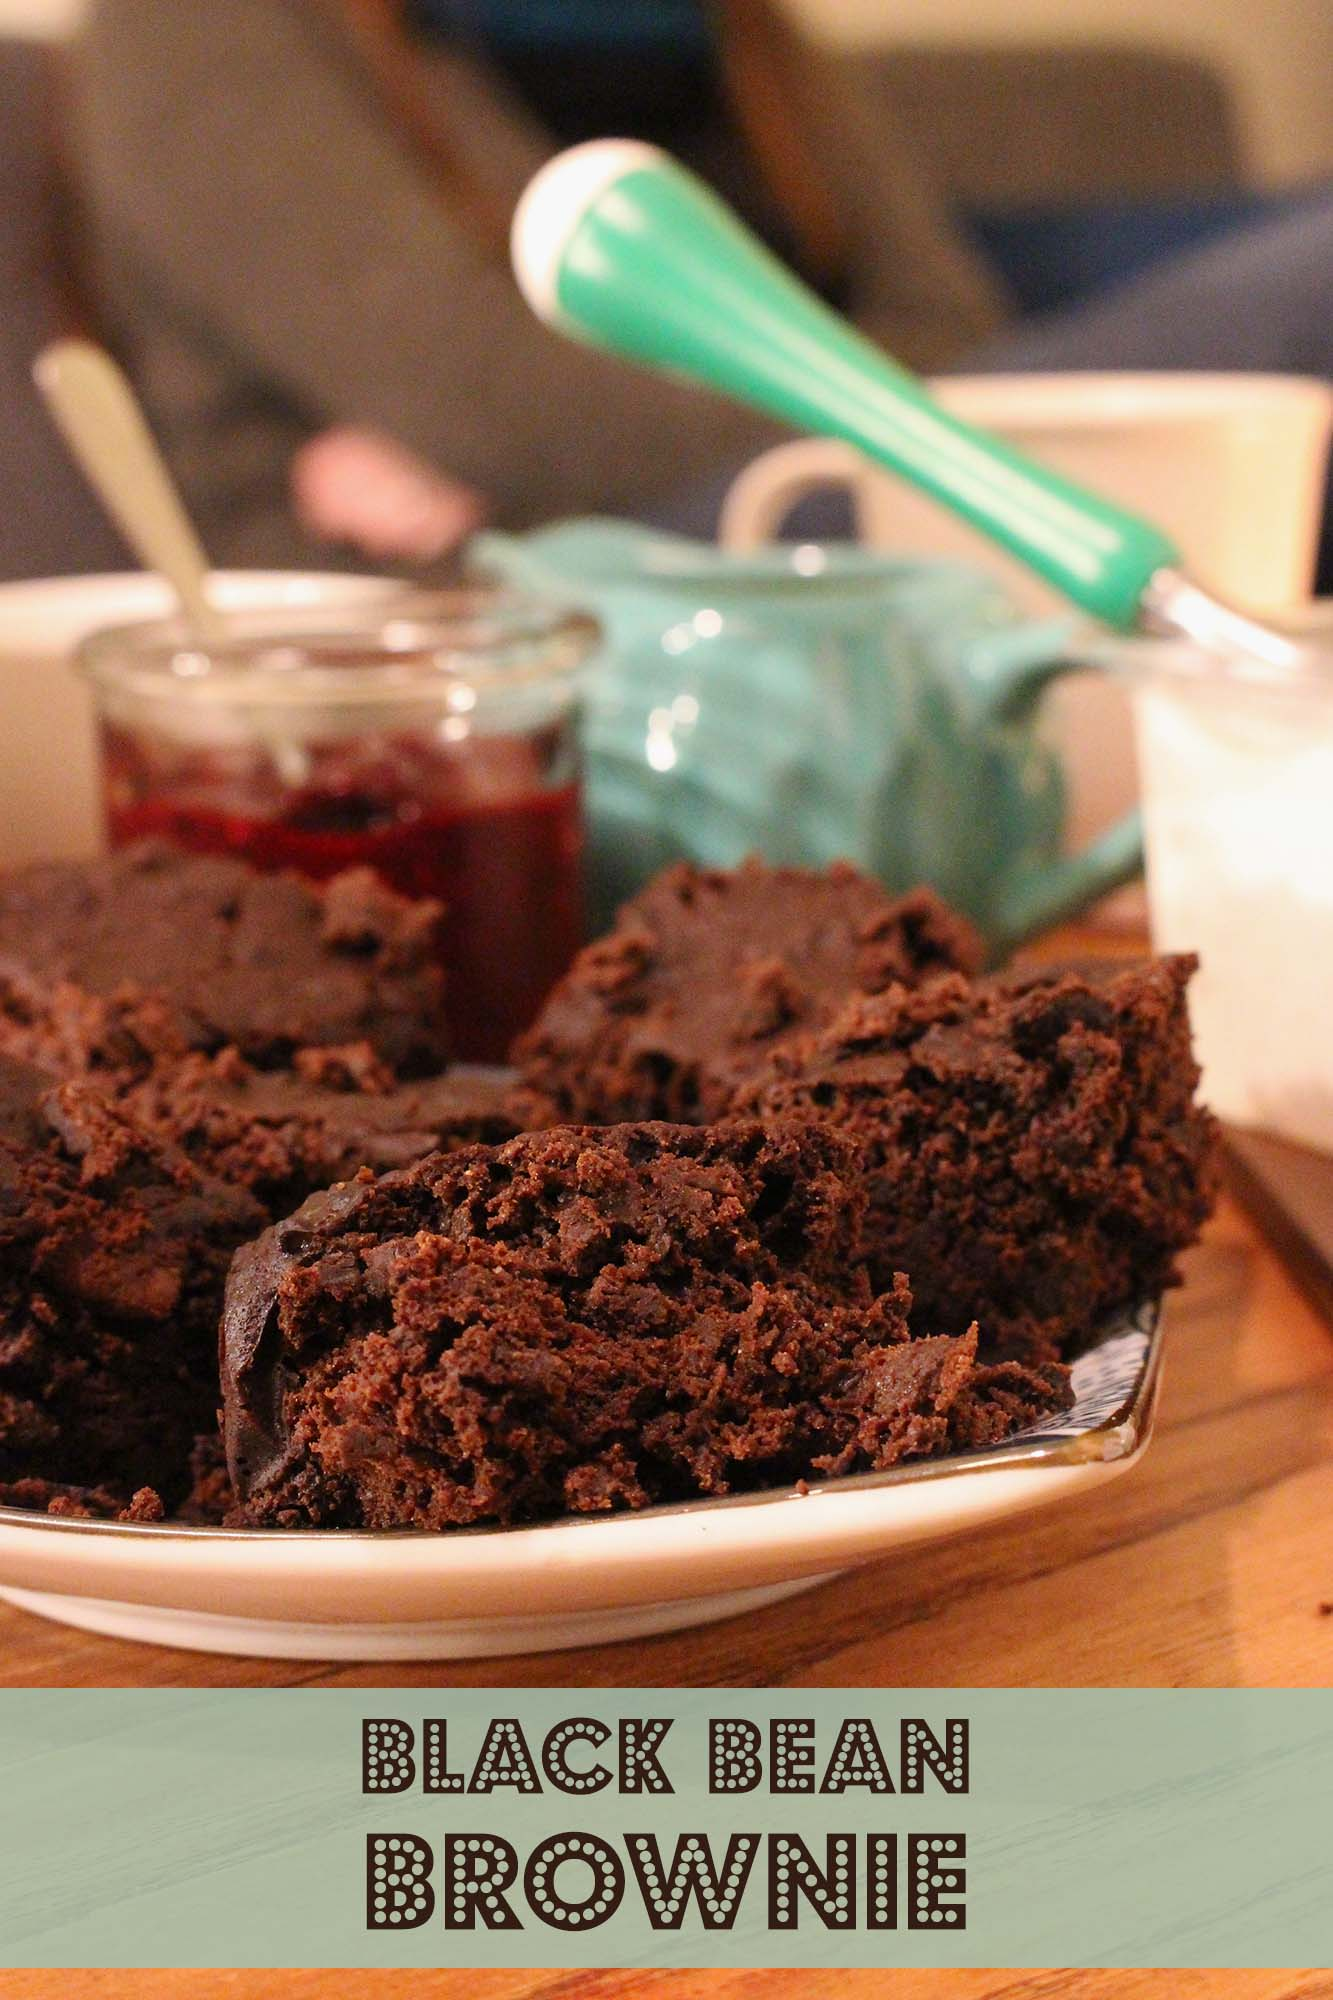 Black bean brownie i crockpot